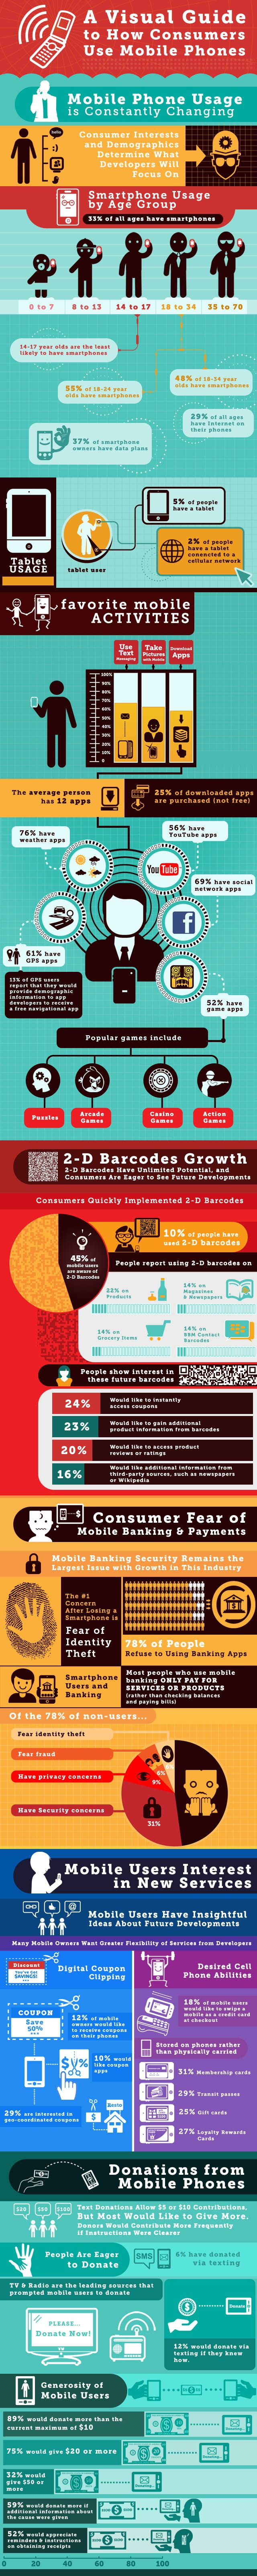 #INFOGRAPHIC: A VISUAL GUIDE TO HOW CUSTOMERS USE MOBILE PHONES